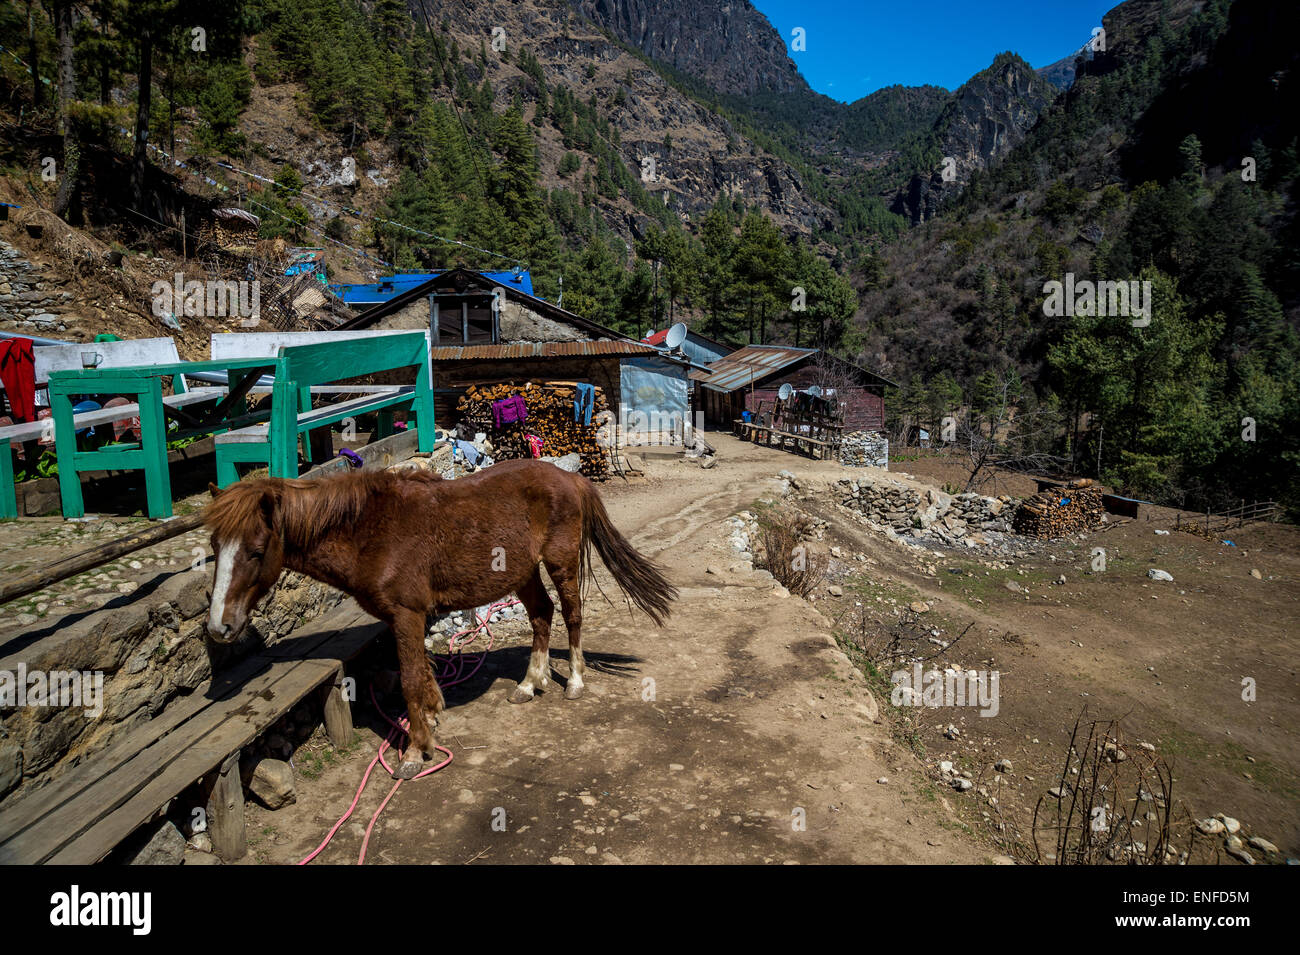 Horse in a village, on the way to Everest Base Camp, Nepal - Stock Image